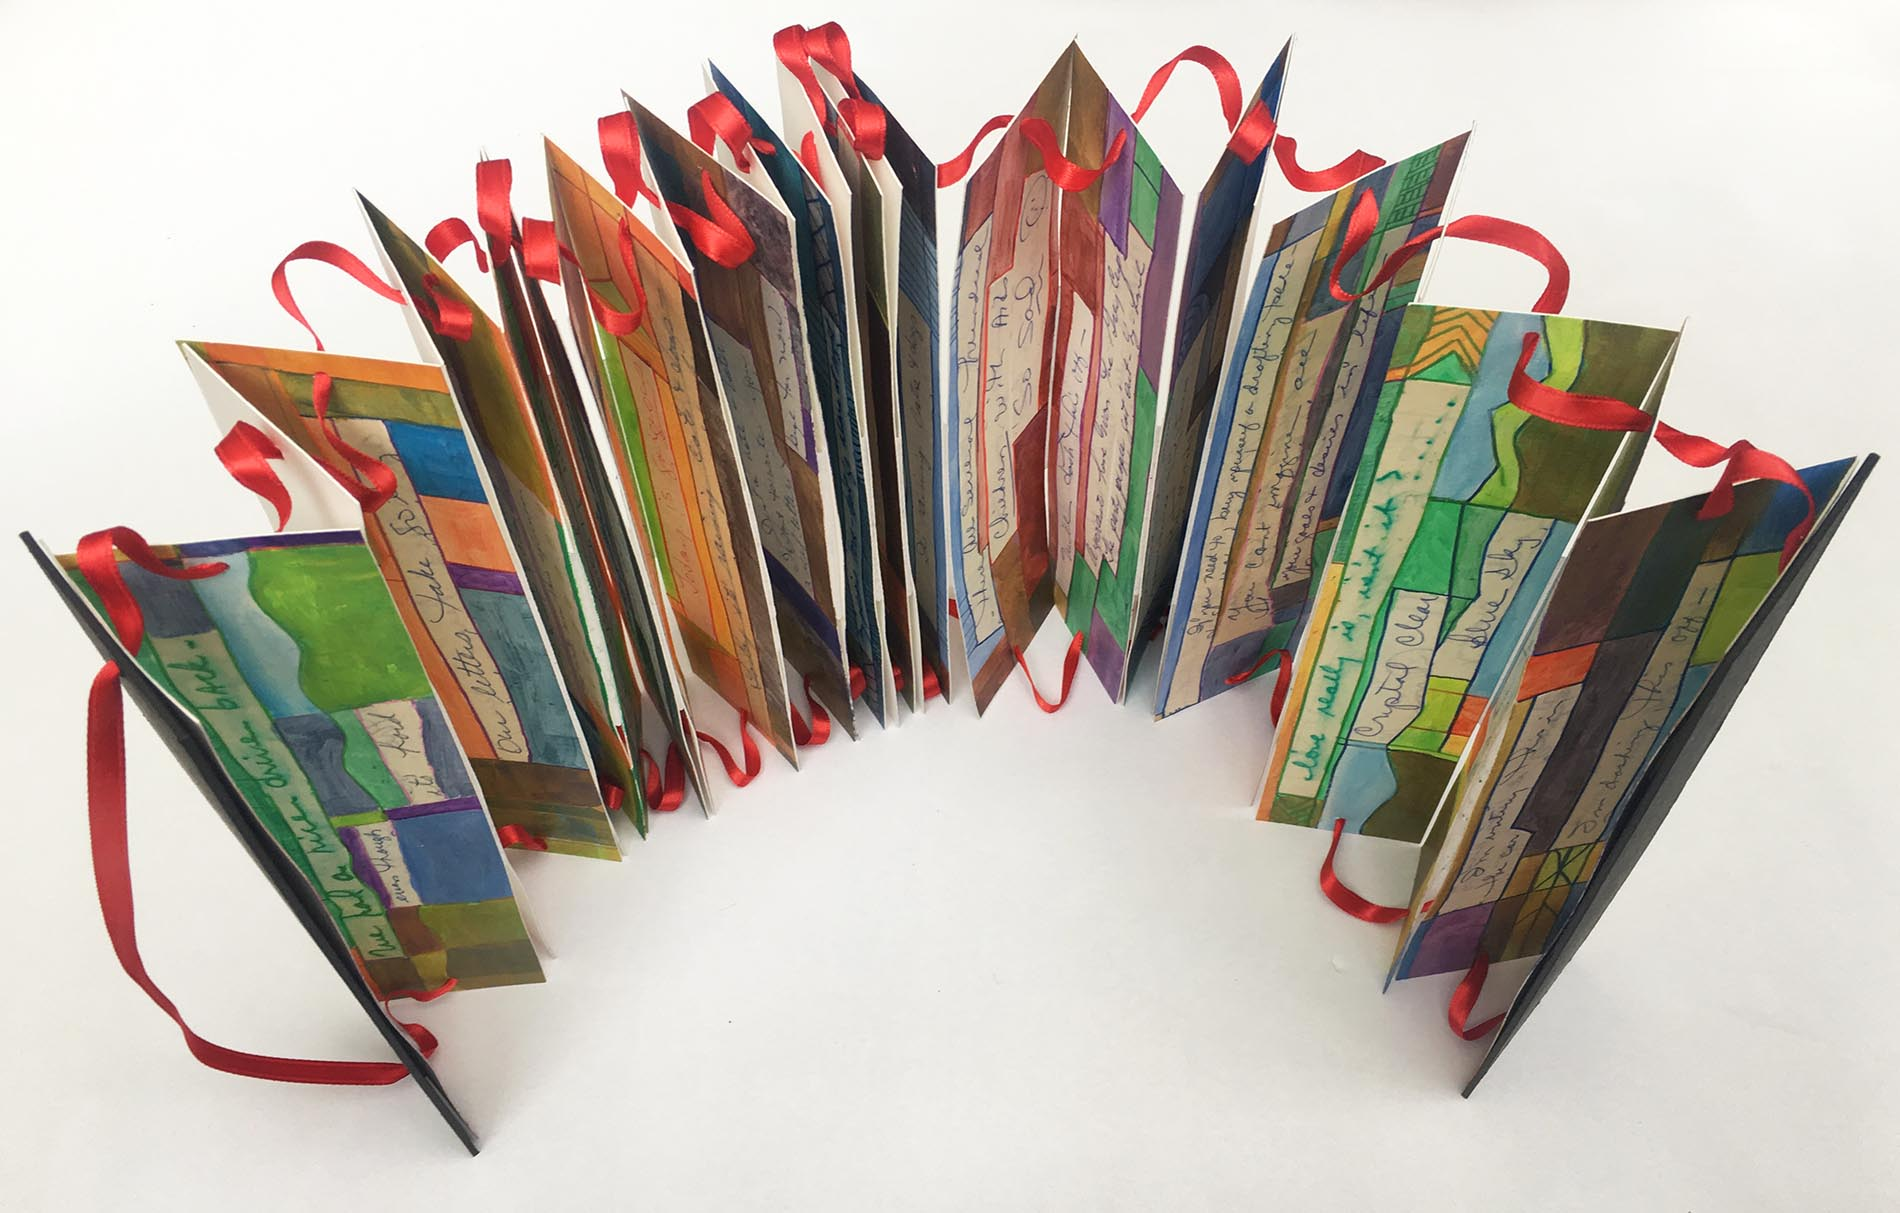 accordion book standing upright